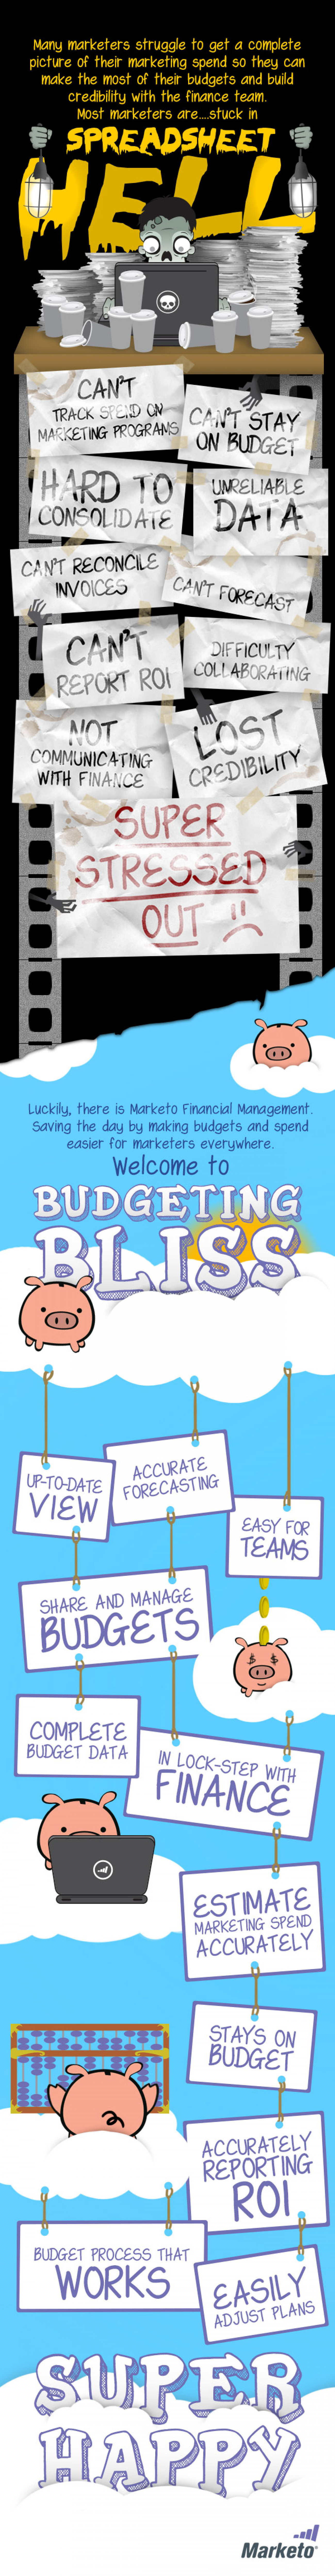 Are You in Spreadsheet Hell or Budgeting Bliss?  Infographic